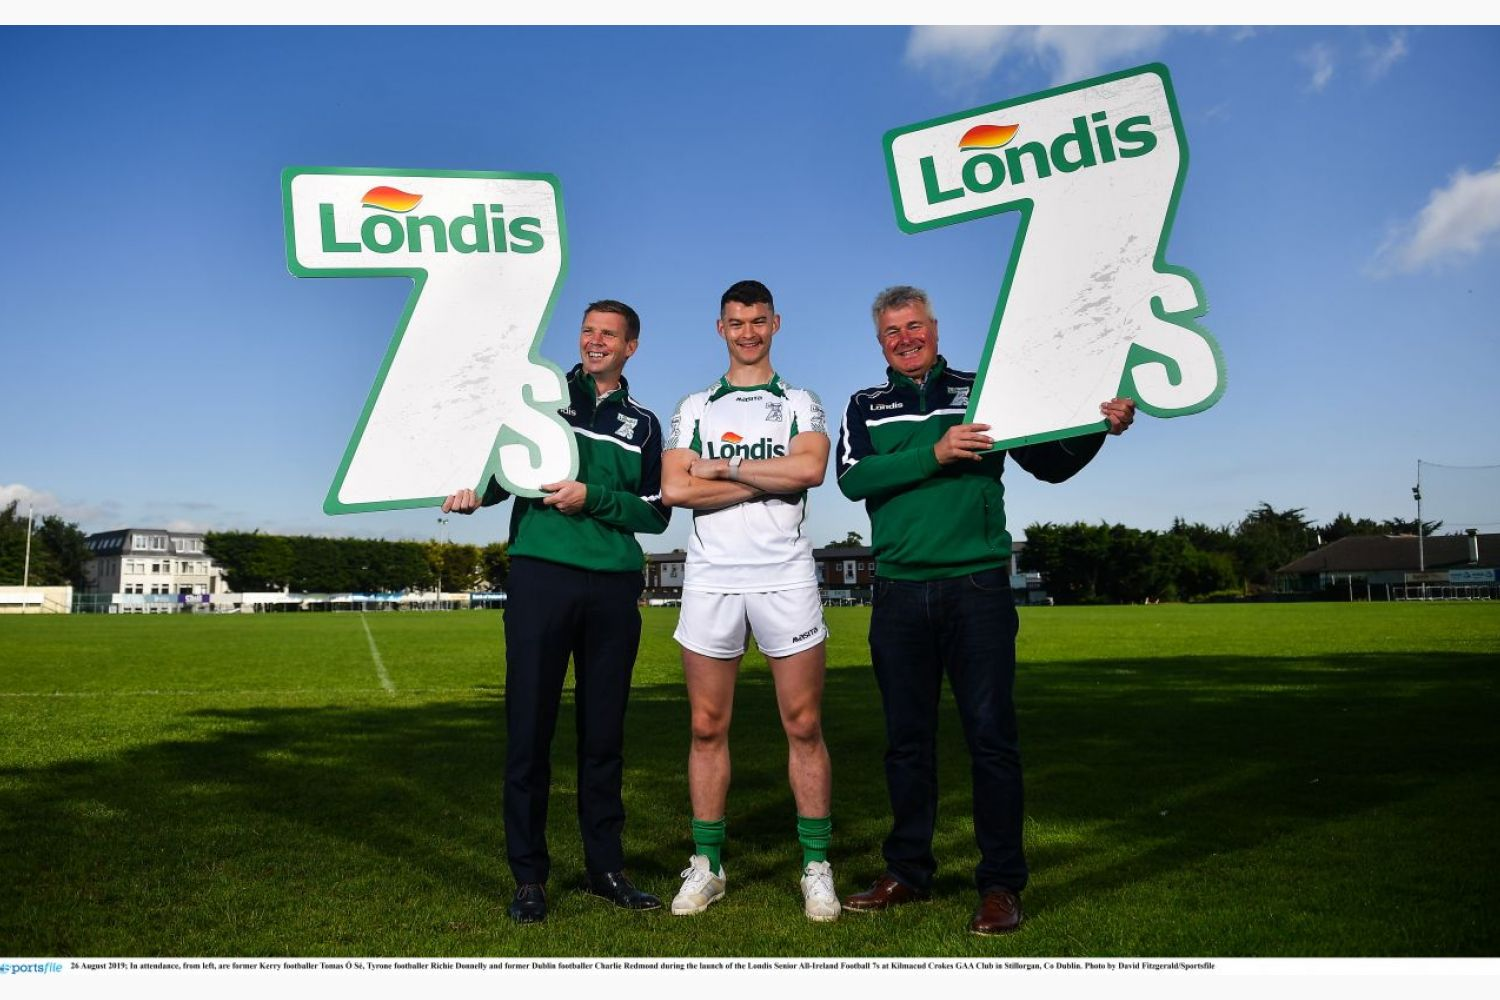 Community brand Londis renew sponsorship of the Londis 7s, the All-Ireland Senior Football Tournament at Kilmacud Crokes